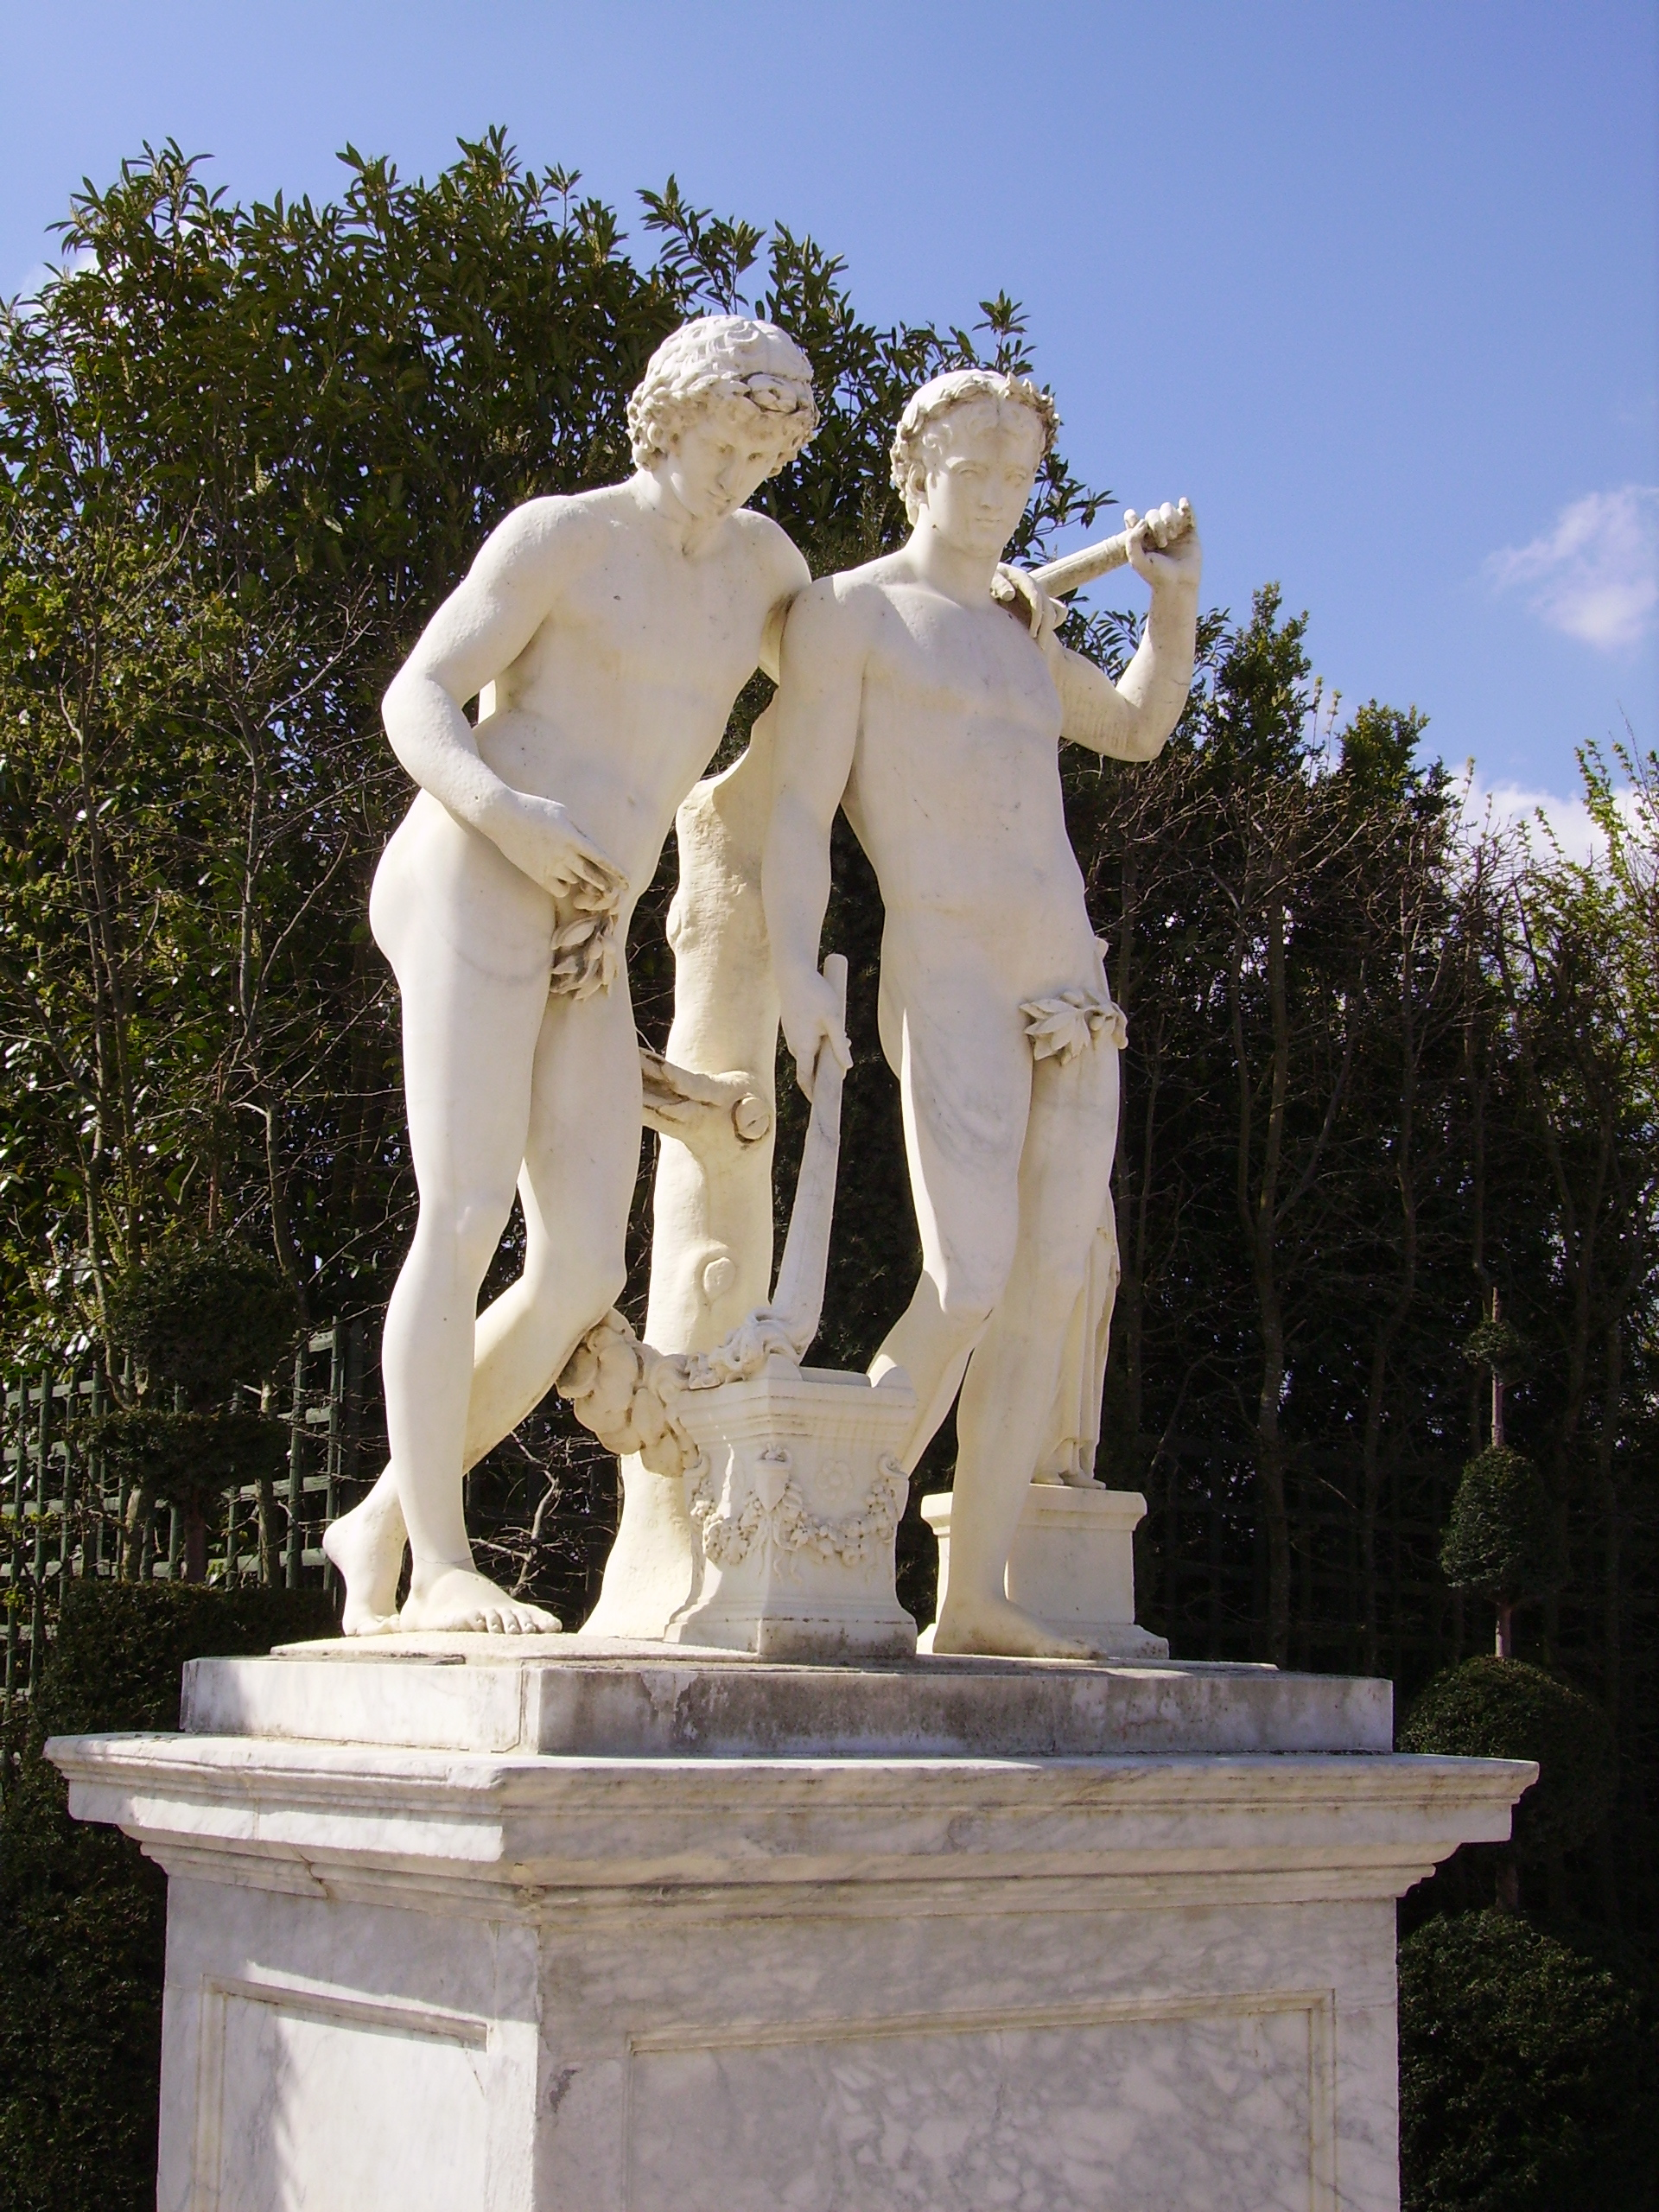 Statue of the twins Castor and Pollux, now in the Parc de Versailles.